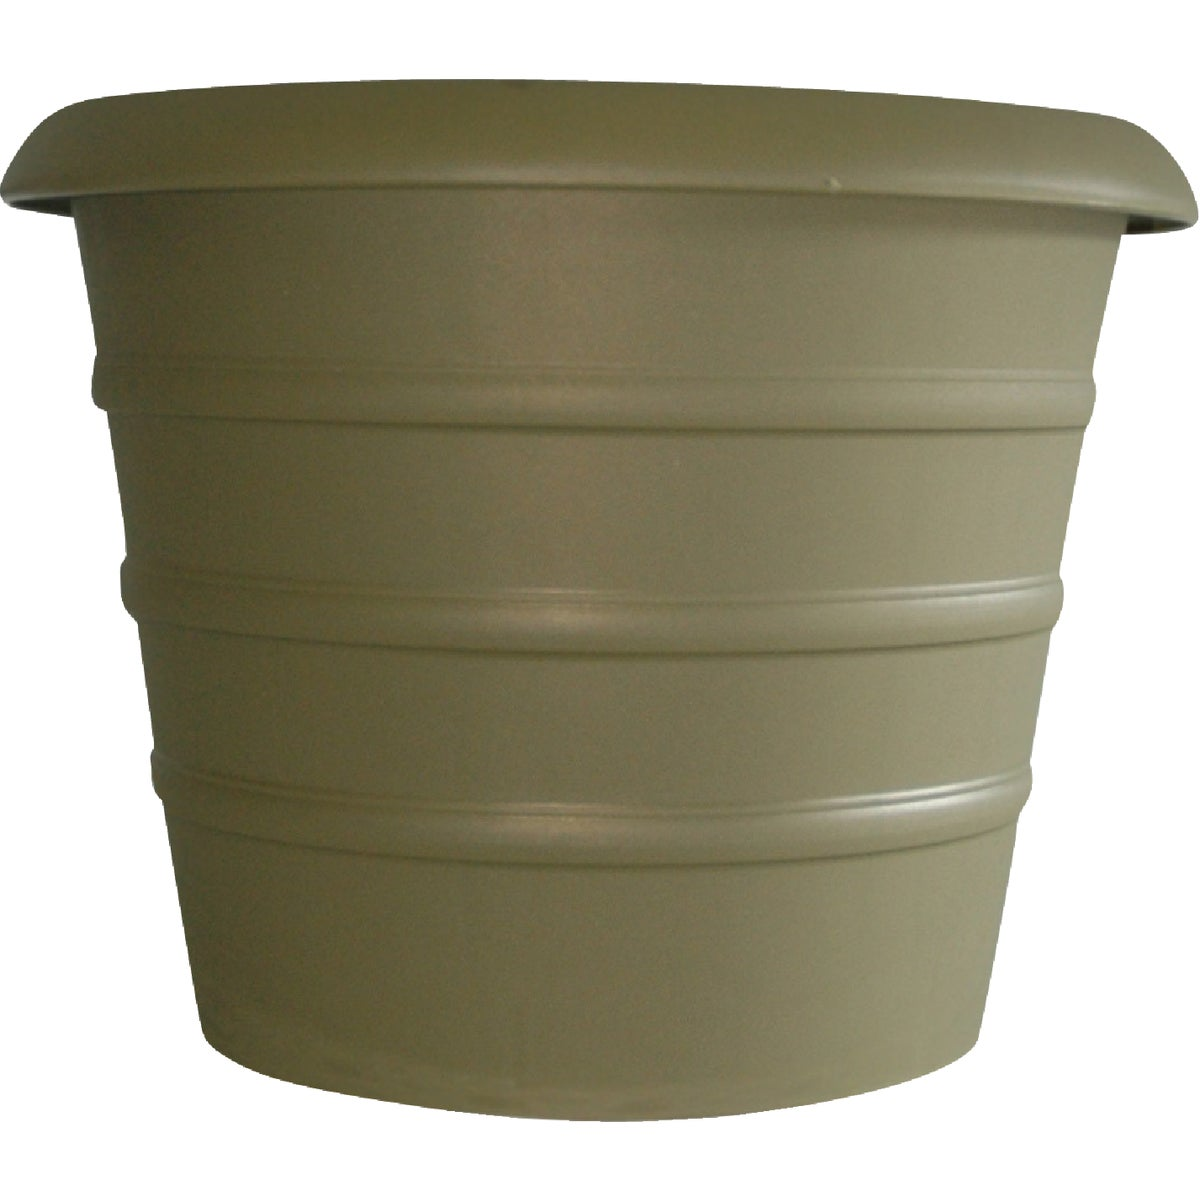 "8""SL GREEN MARINA POT - MSA08001B15 by Myers Industries Inc"